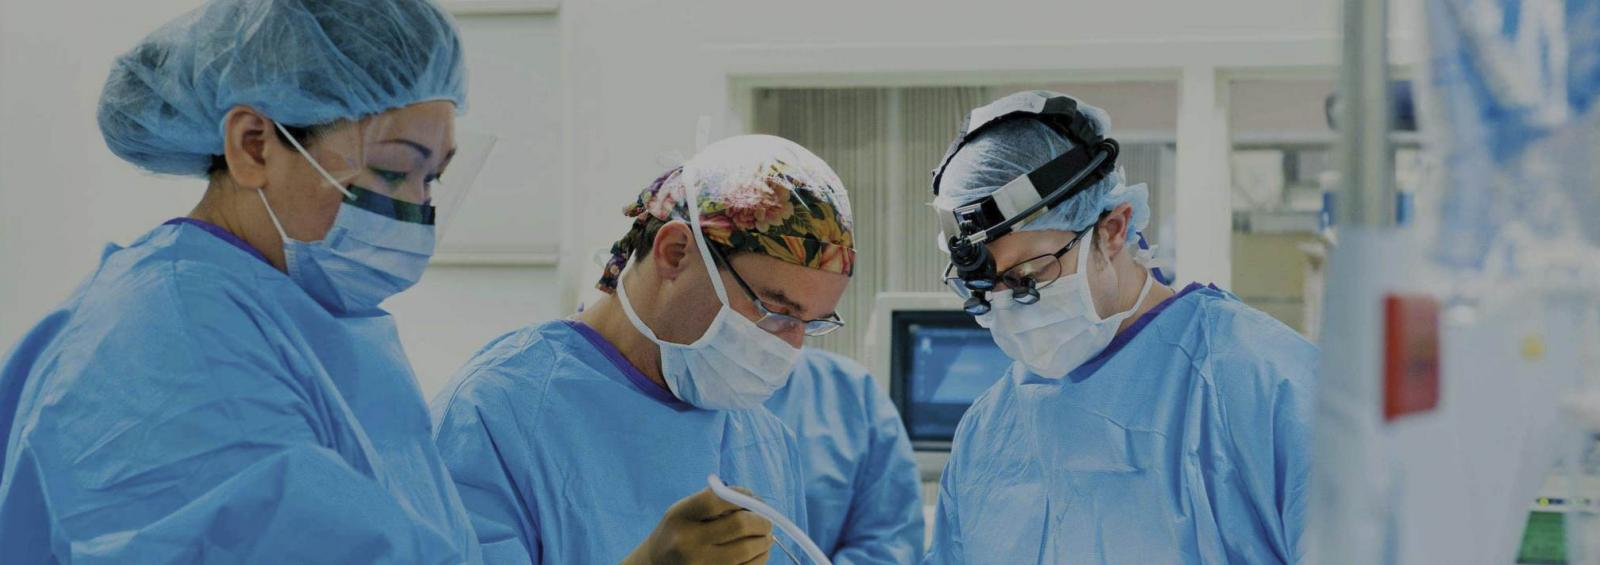 Three Surgeons Perform Procedure in Operating Room